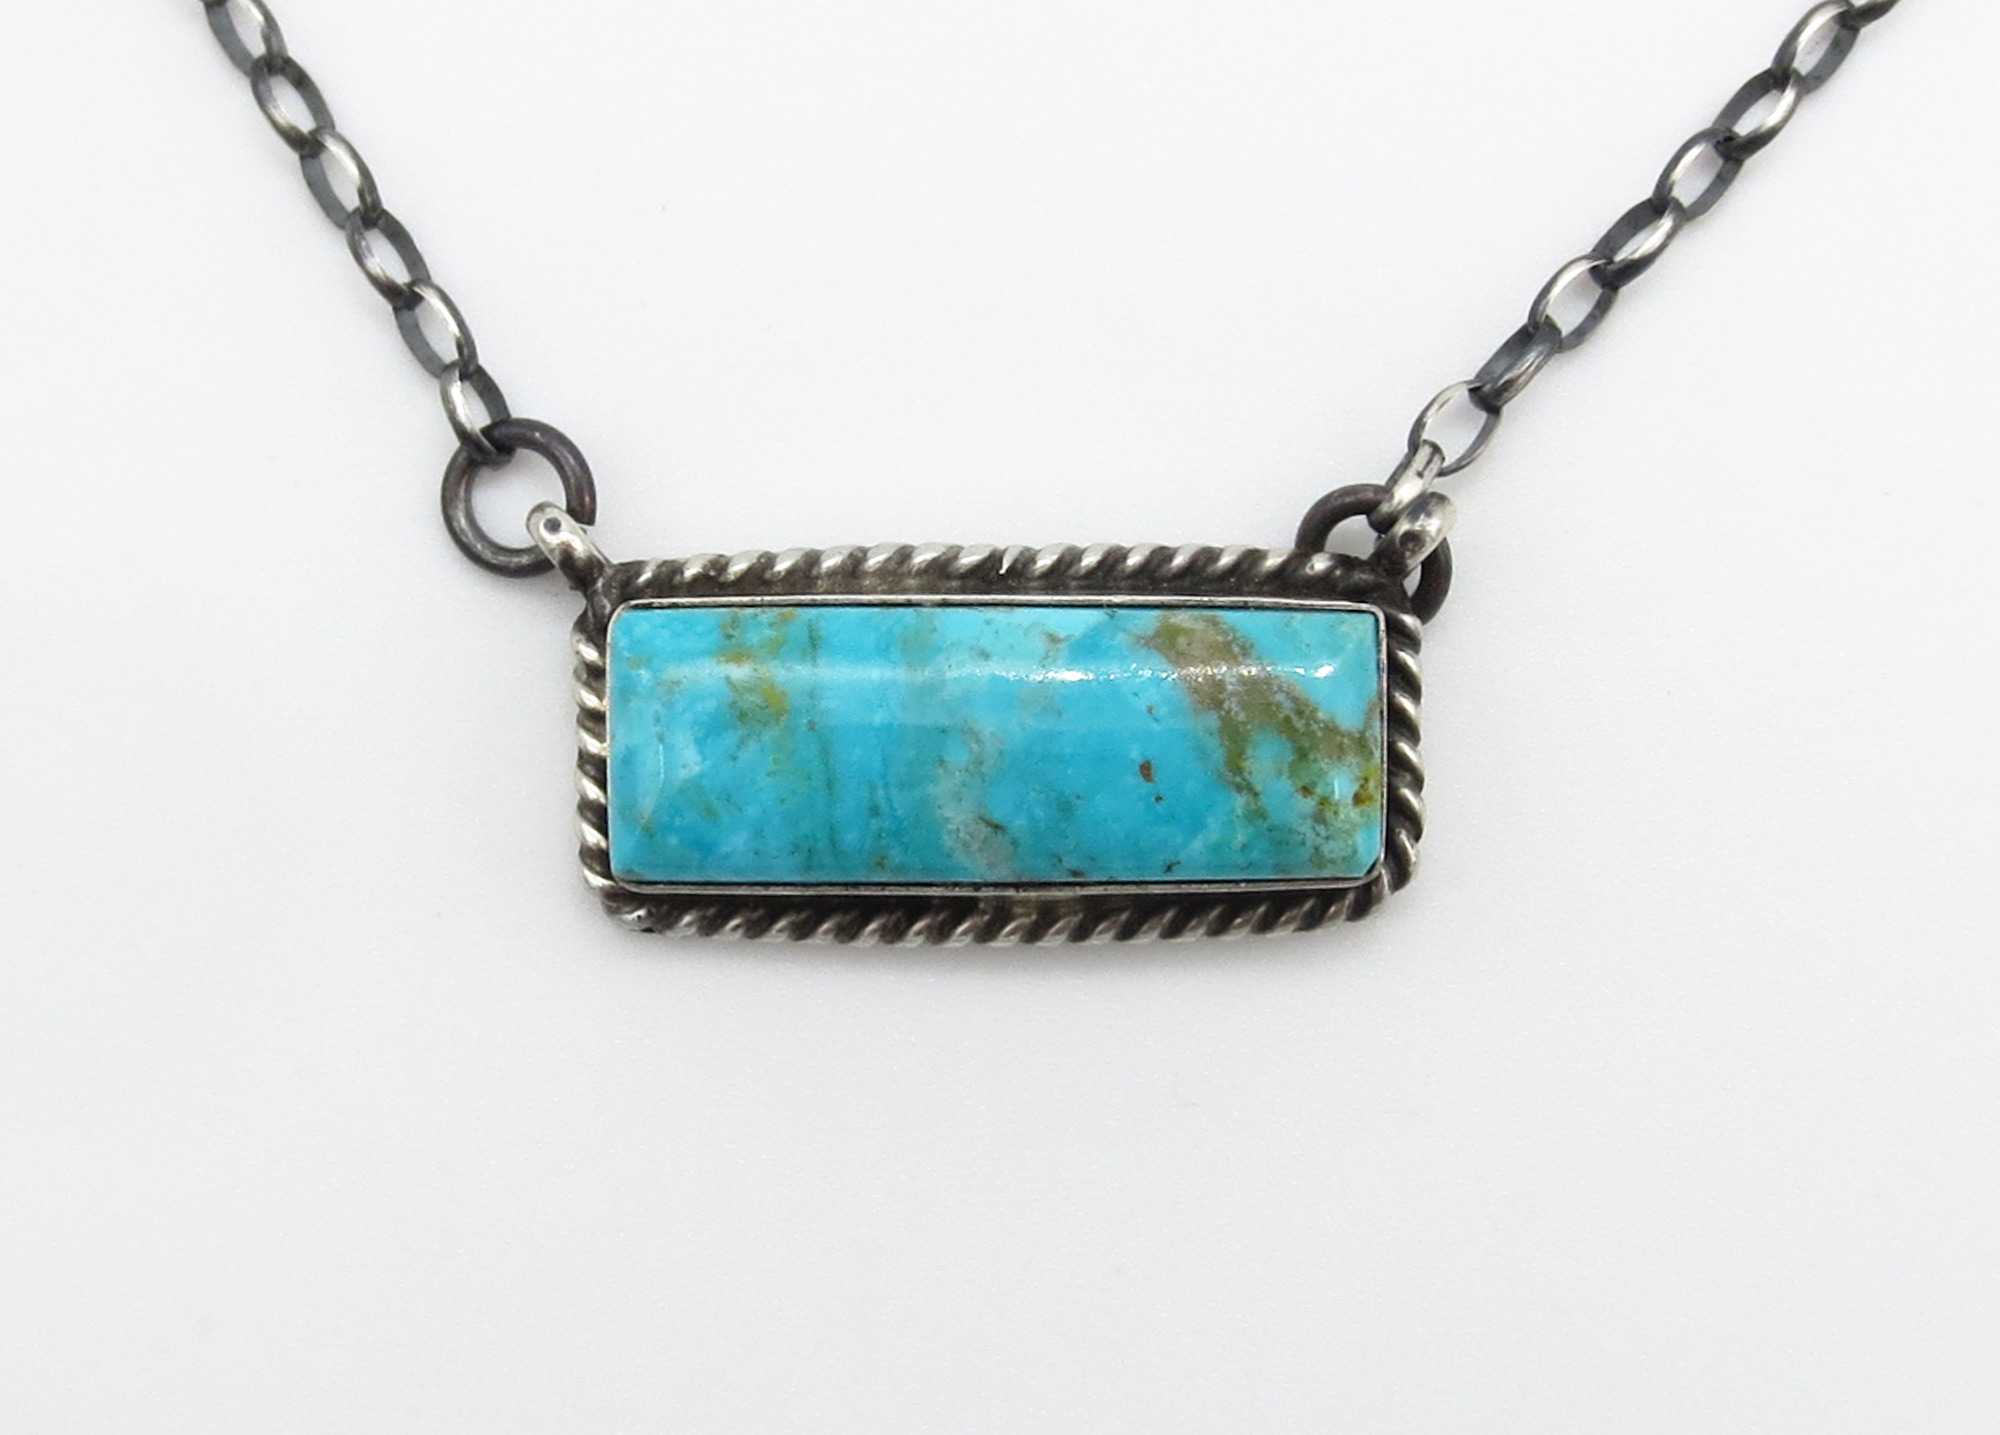 Turquoise & Sterling Silver Pendant Necklace Navajo Jewelry - 3942dt